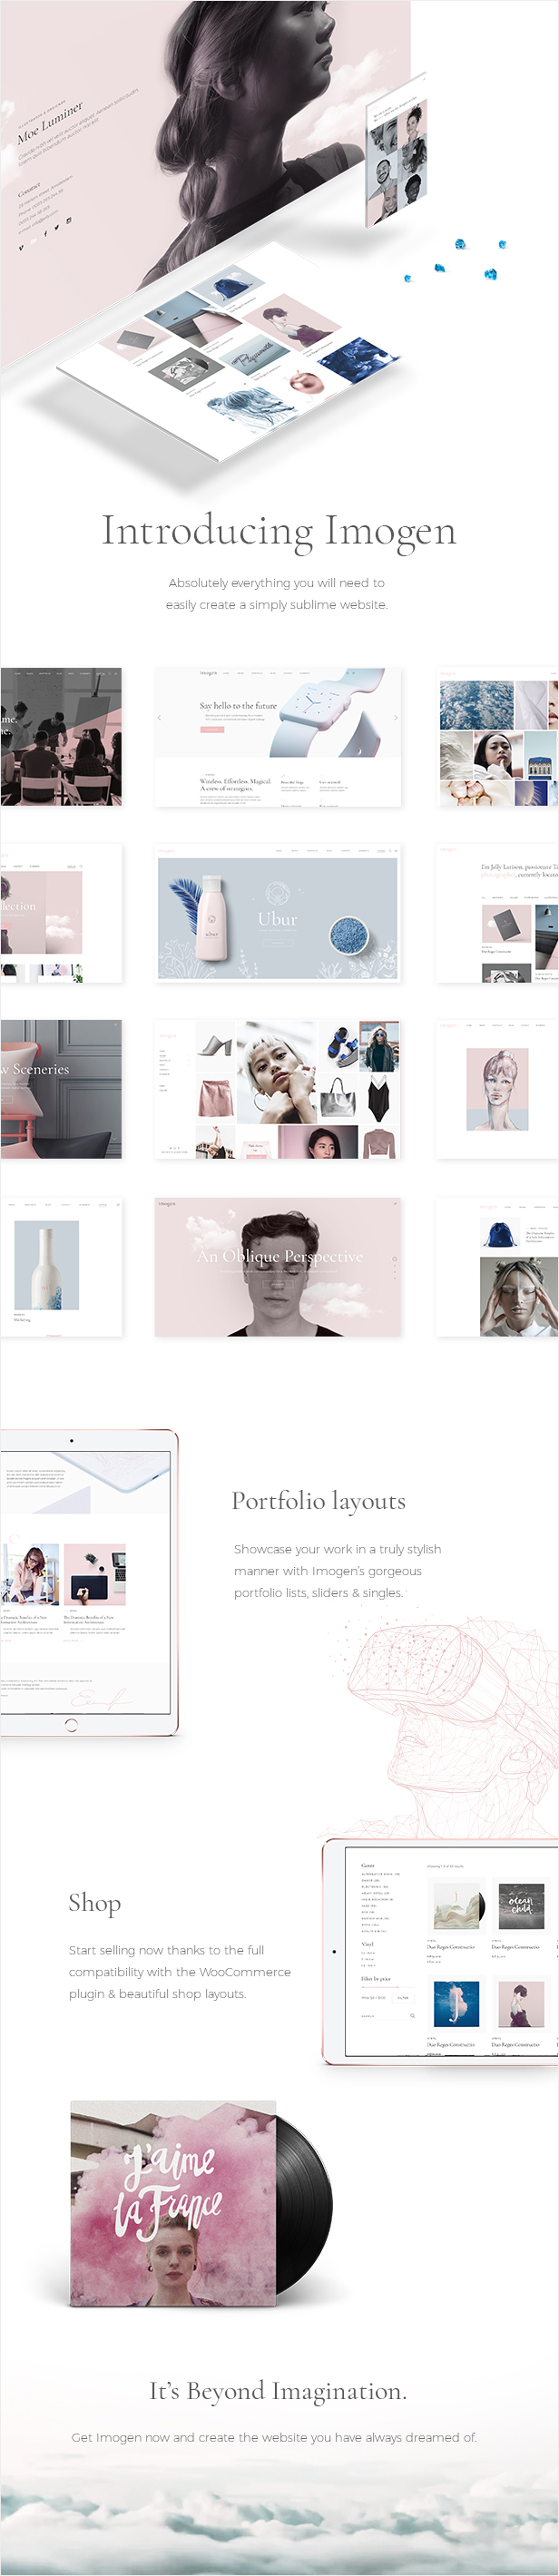 Imogen - Theme for Designers and Creative Businesses - 1